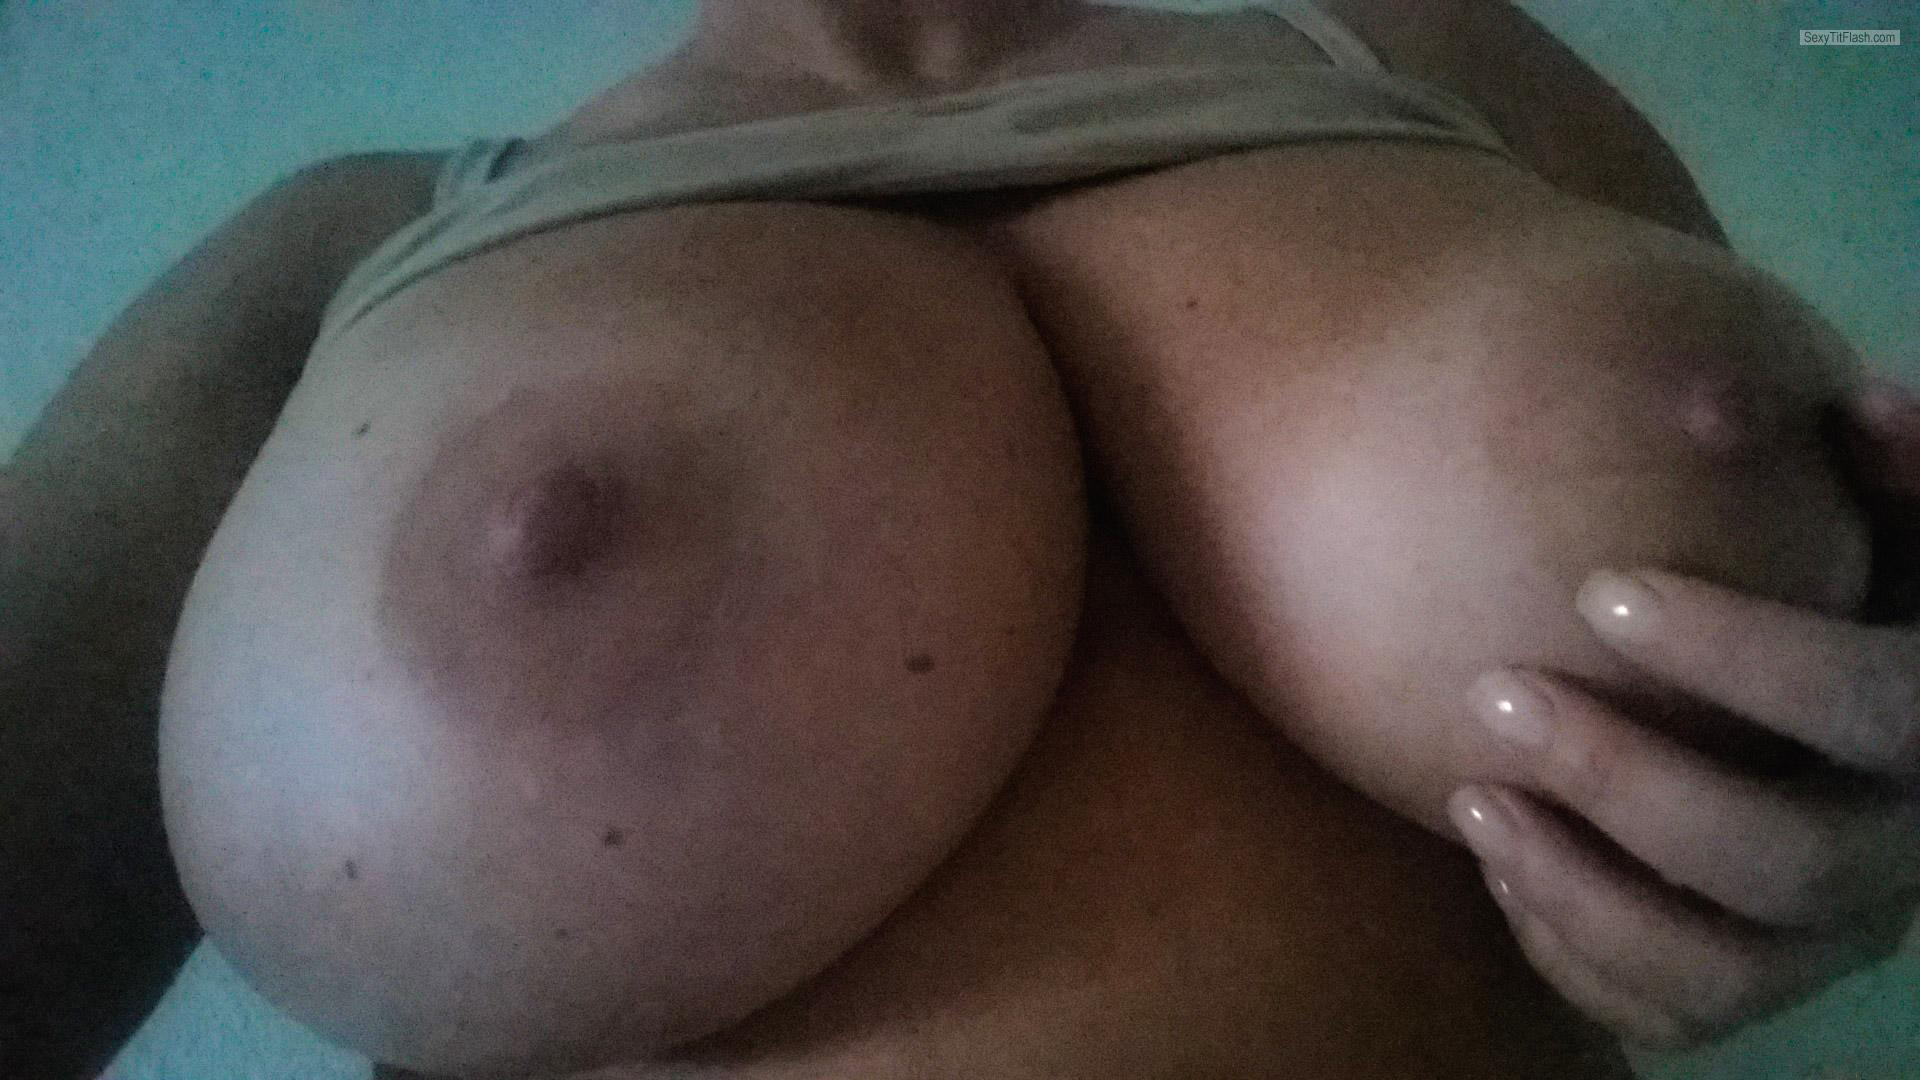 Very big Tits Of My Wife Selfie by Texas Girl